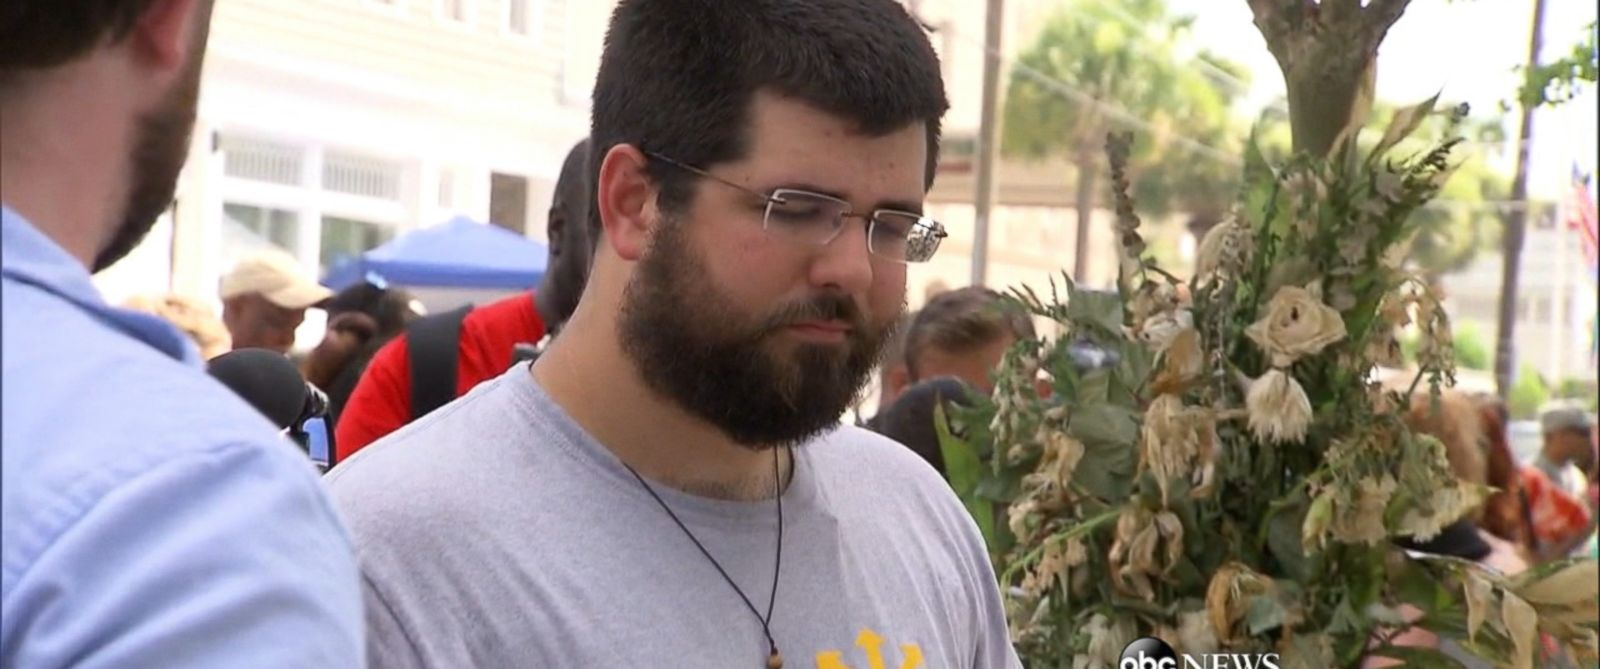 Matt Heimbach is shown here in Charleston, South Carolina, in the wake of the church shooting in which nine people were killed.